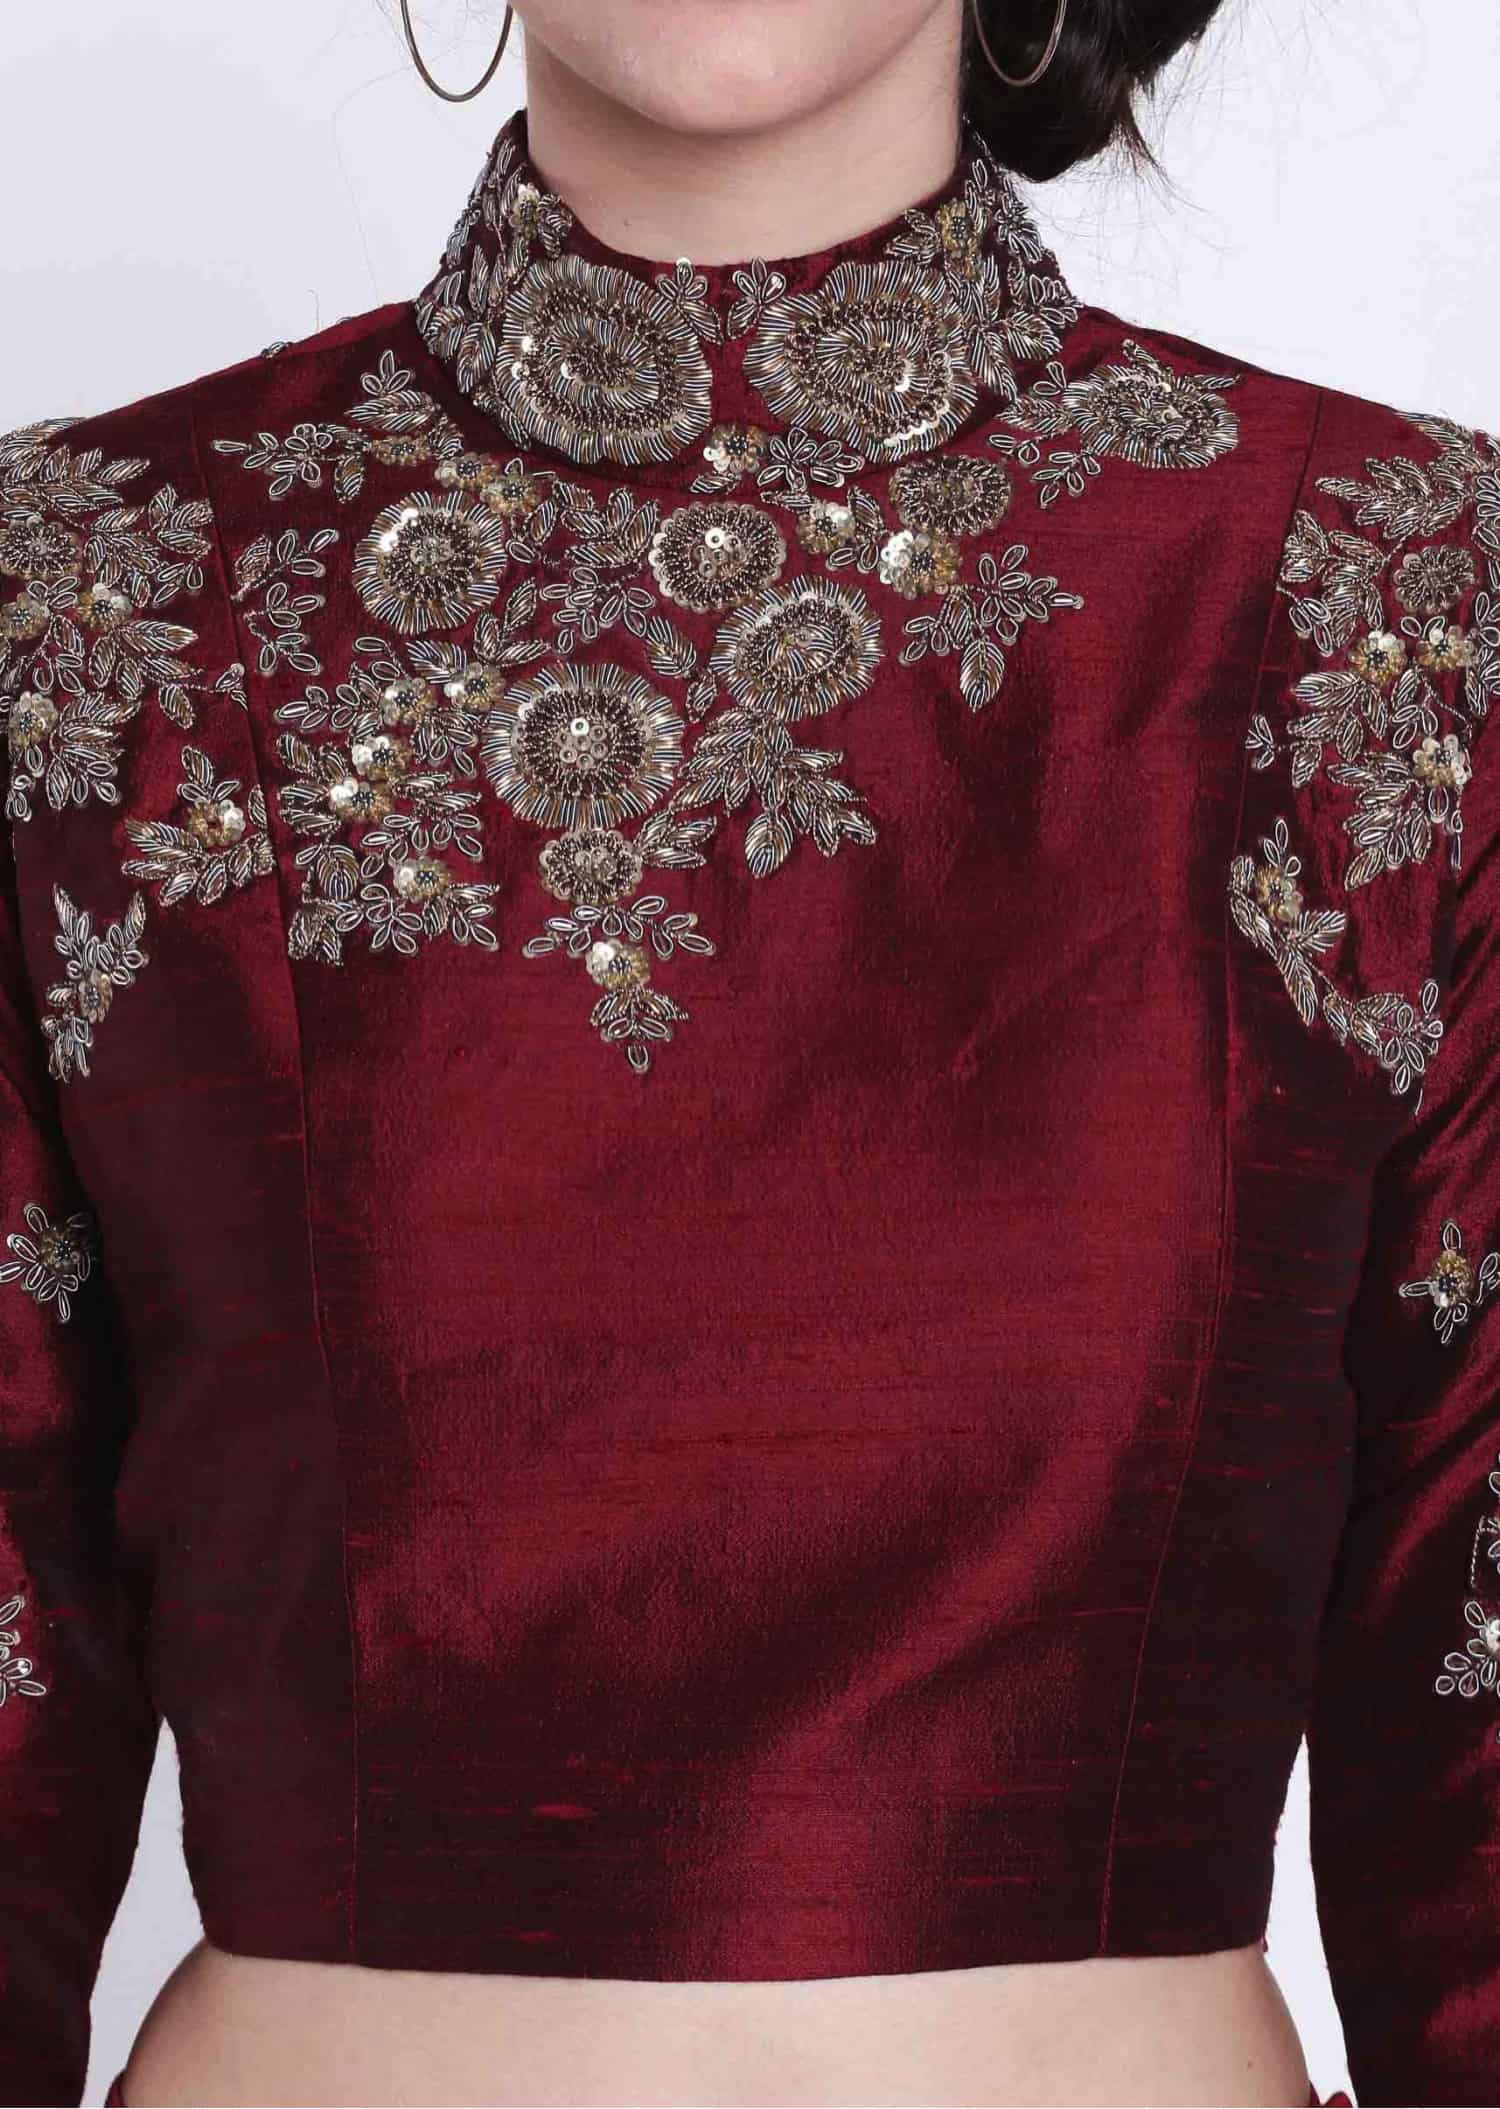 zardosi work blouse design